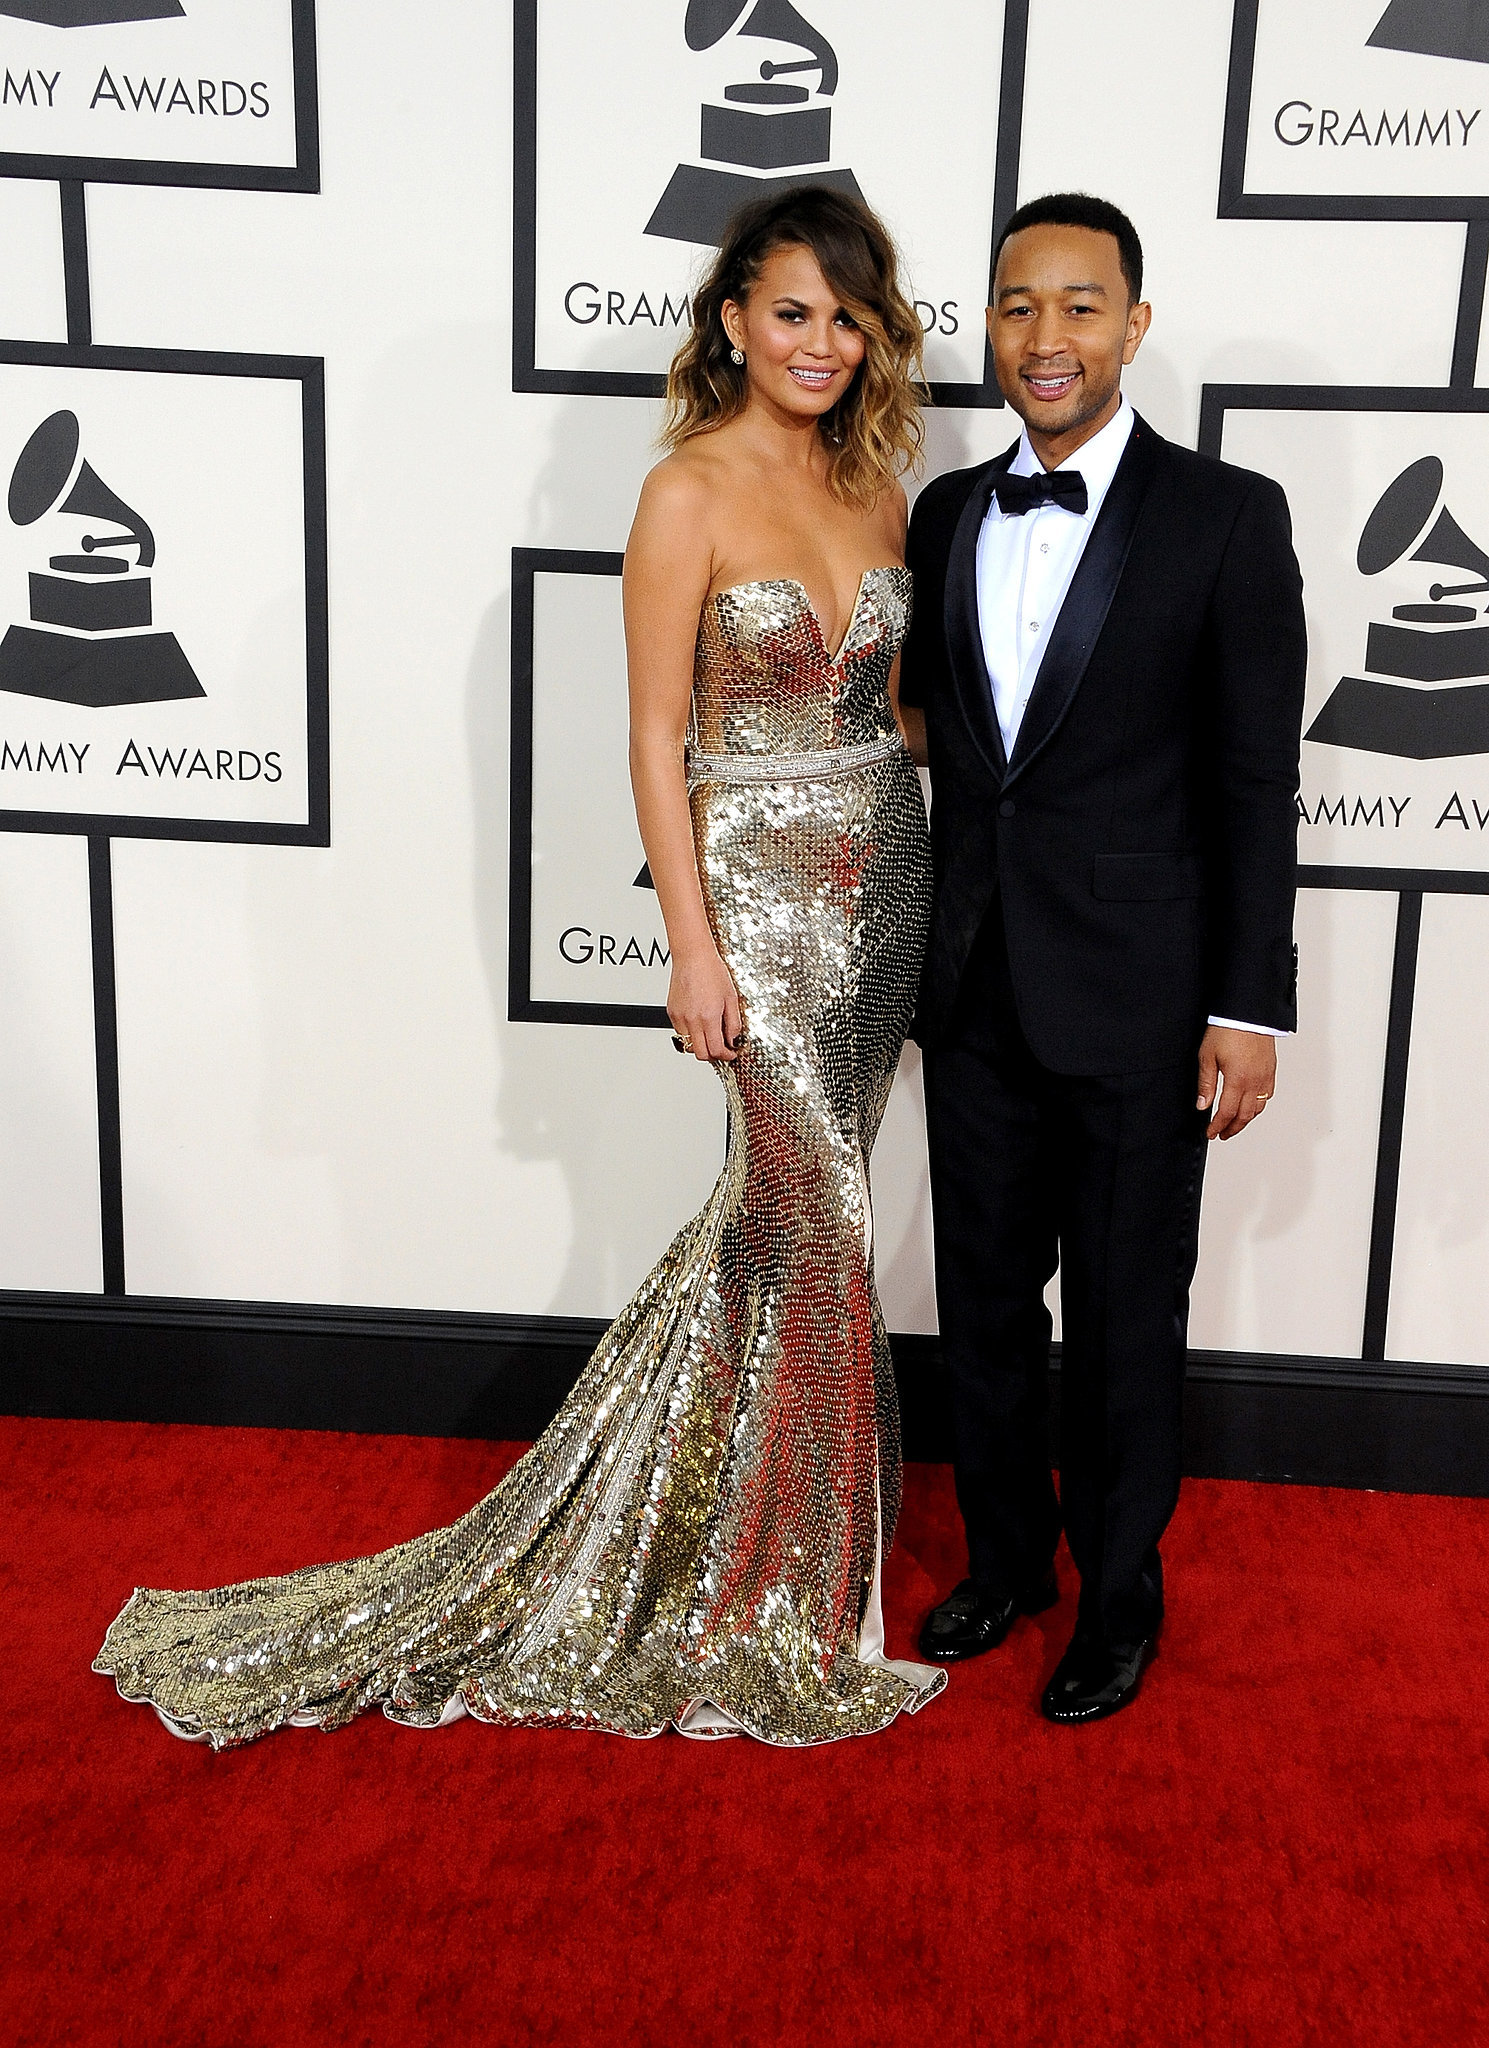 Could Chrissy and John Make a More Gorgeous Grammys Couple?